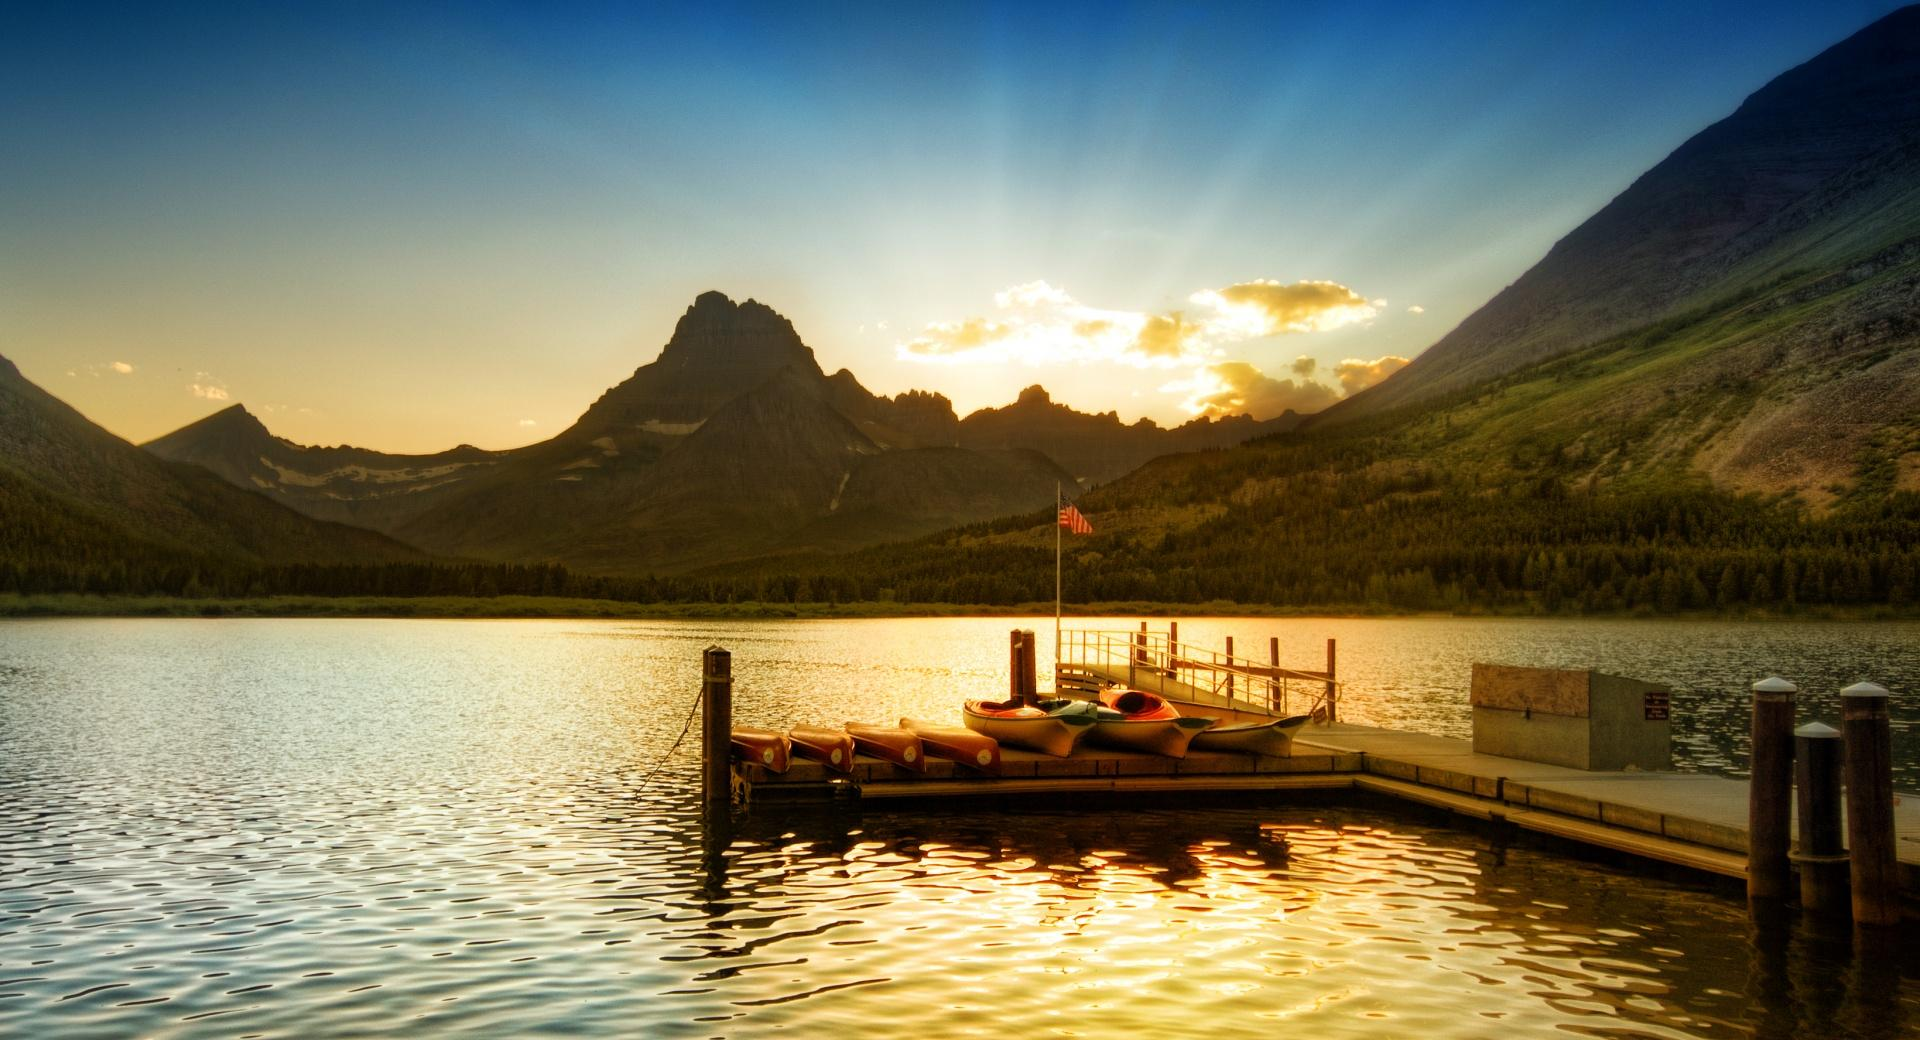 Sunset At Glacier National Park wallpapers HD quality